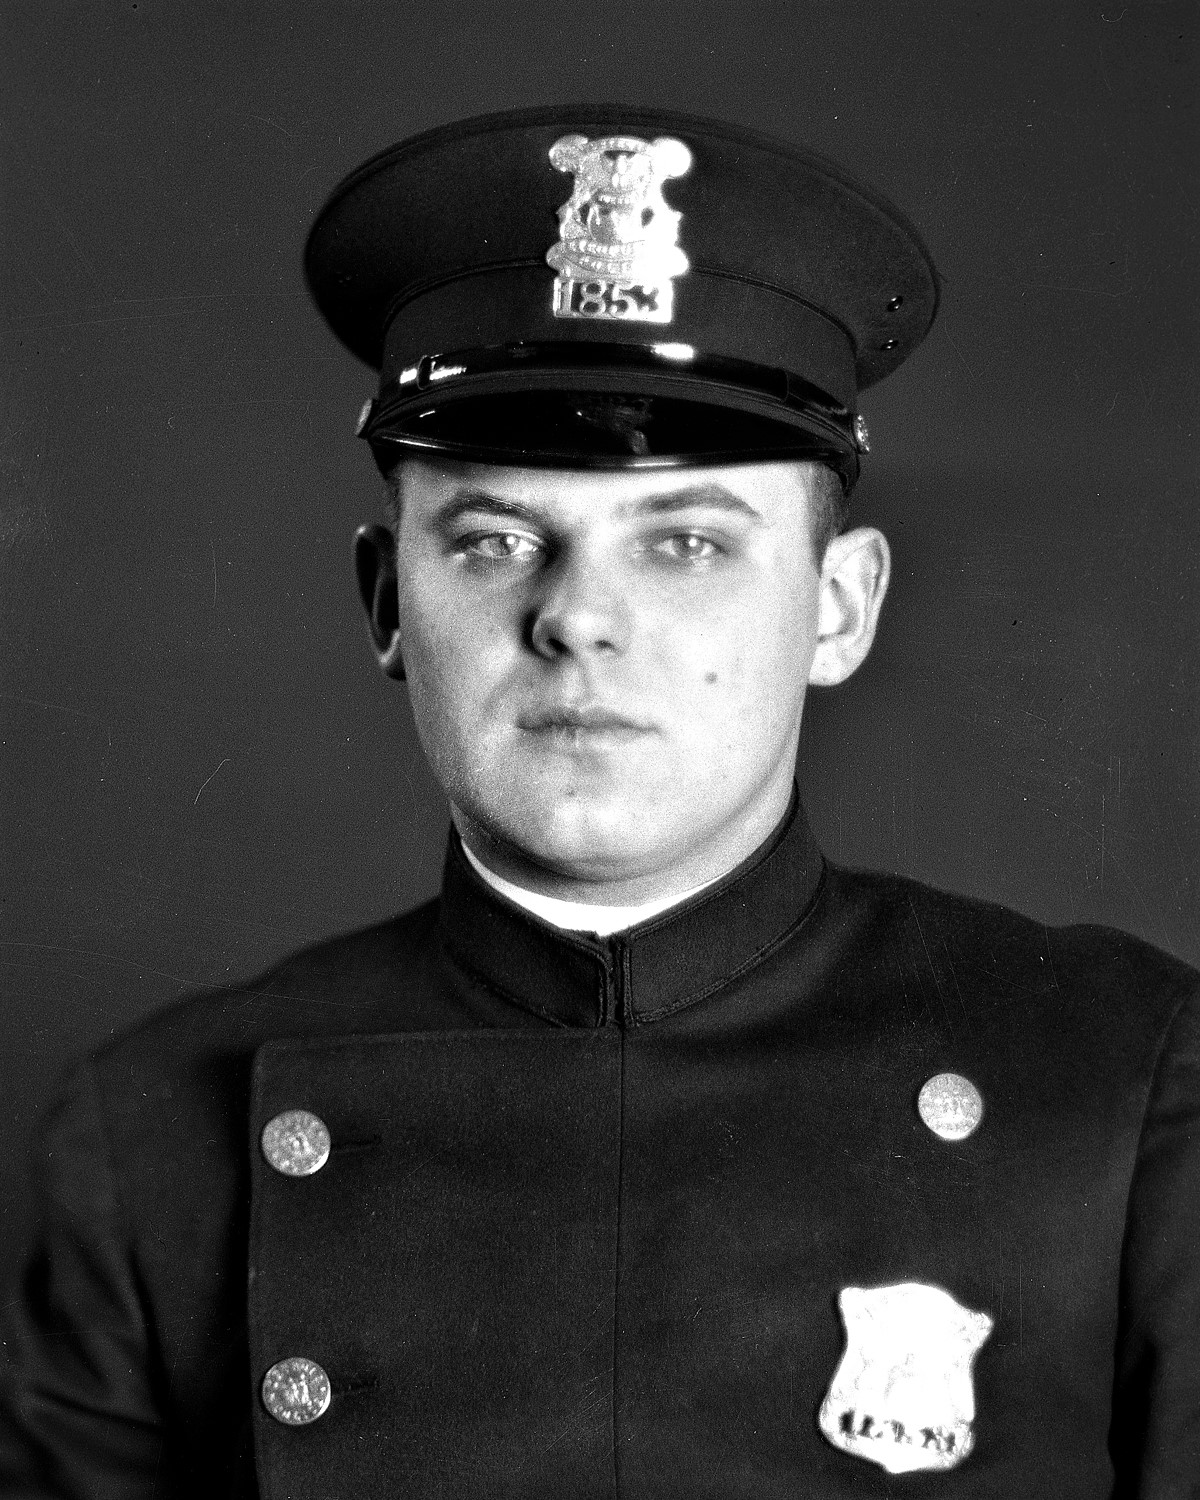 Police Officer Frank Marcinkowski | Detroit Police Department, Michigan